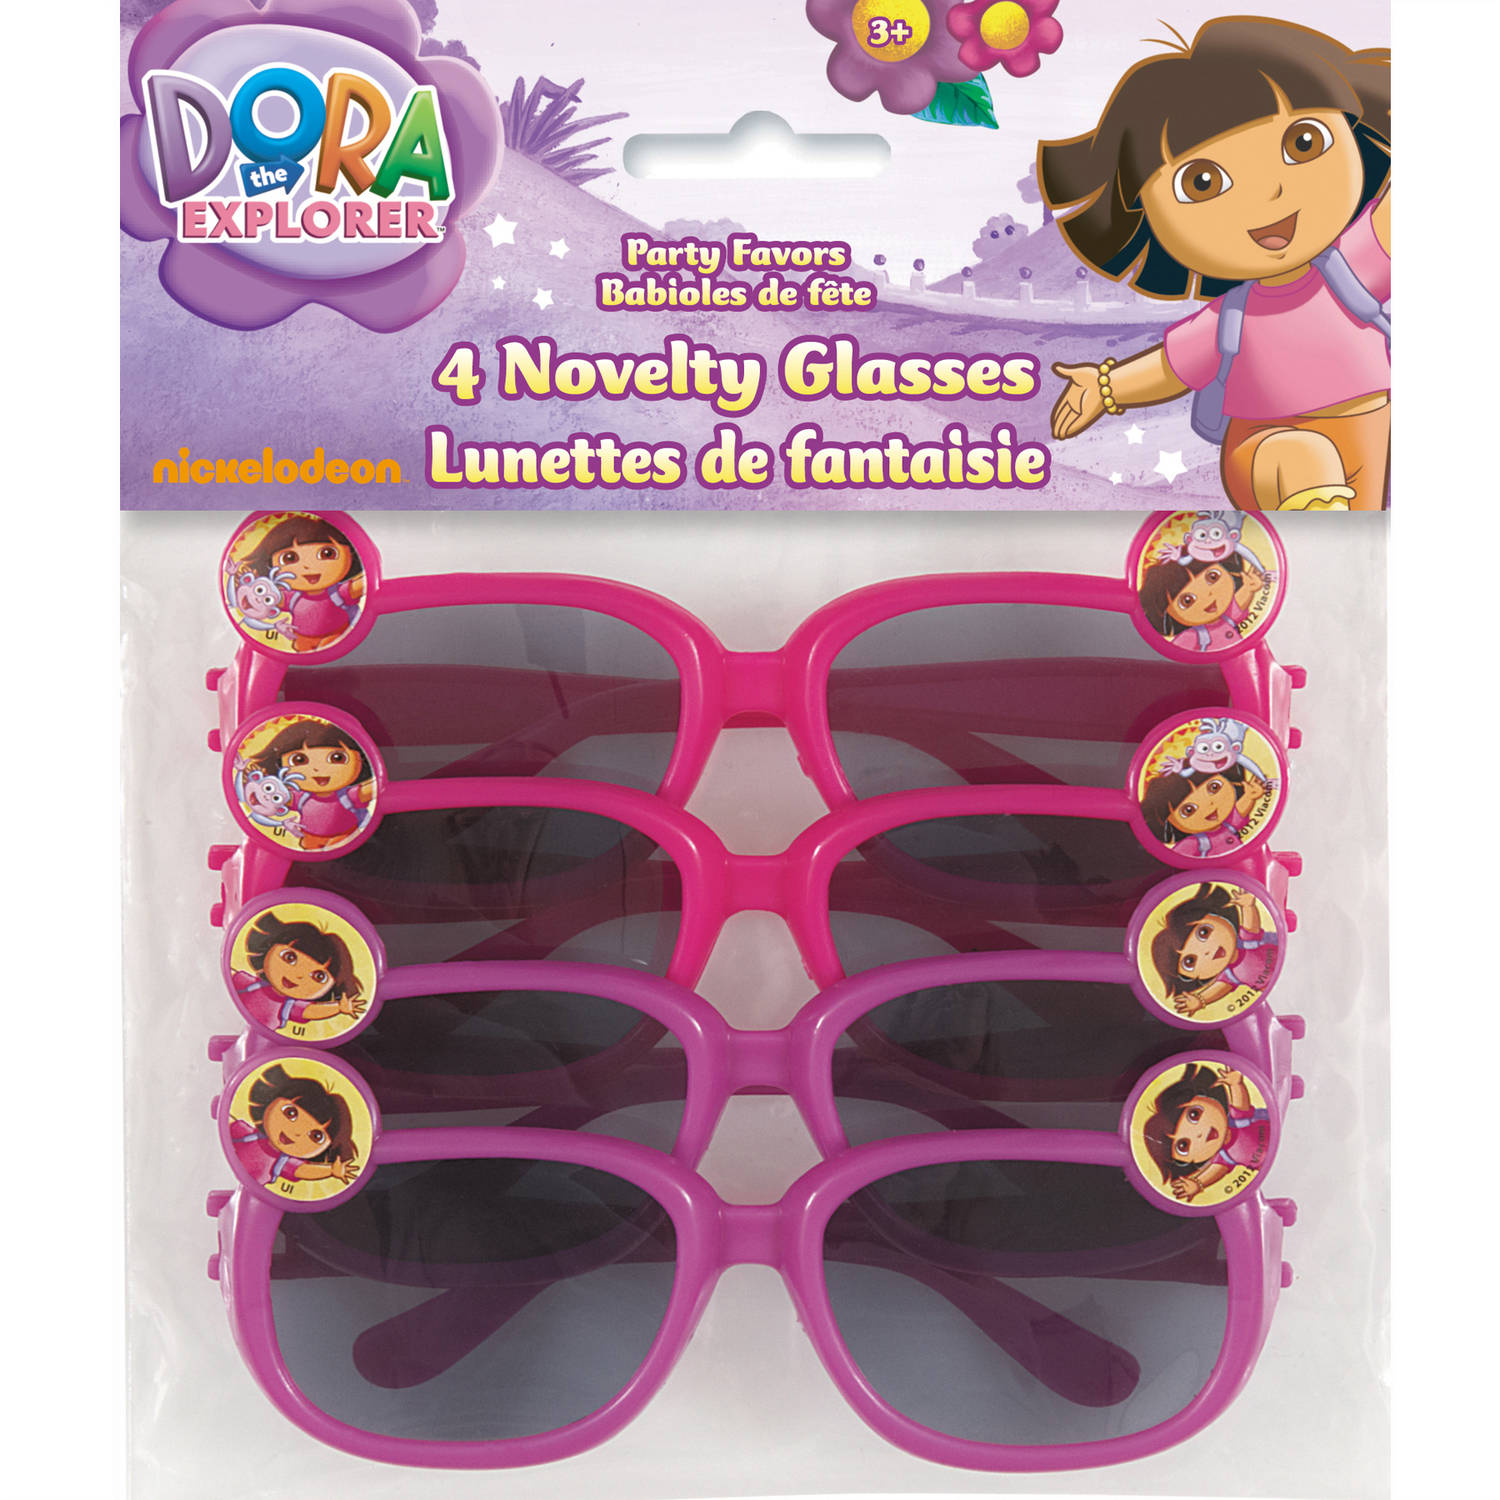 Dora the Explorer Novelty Glasses, 4-Count